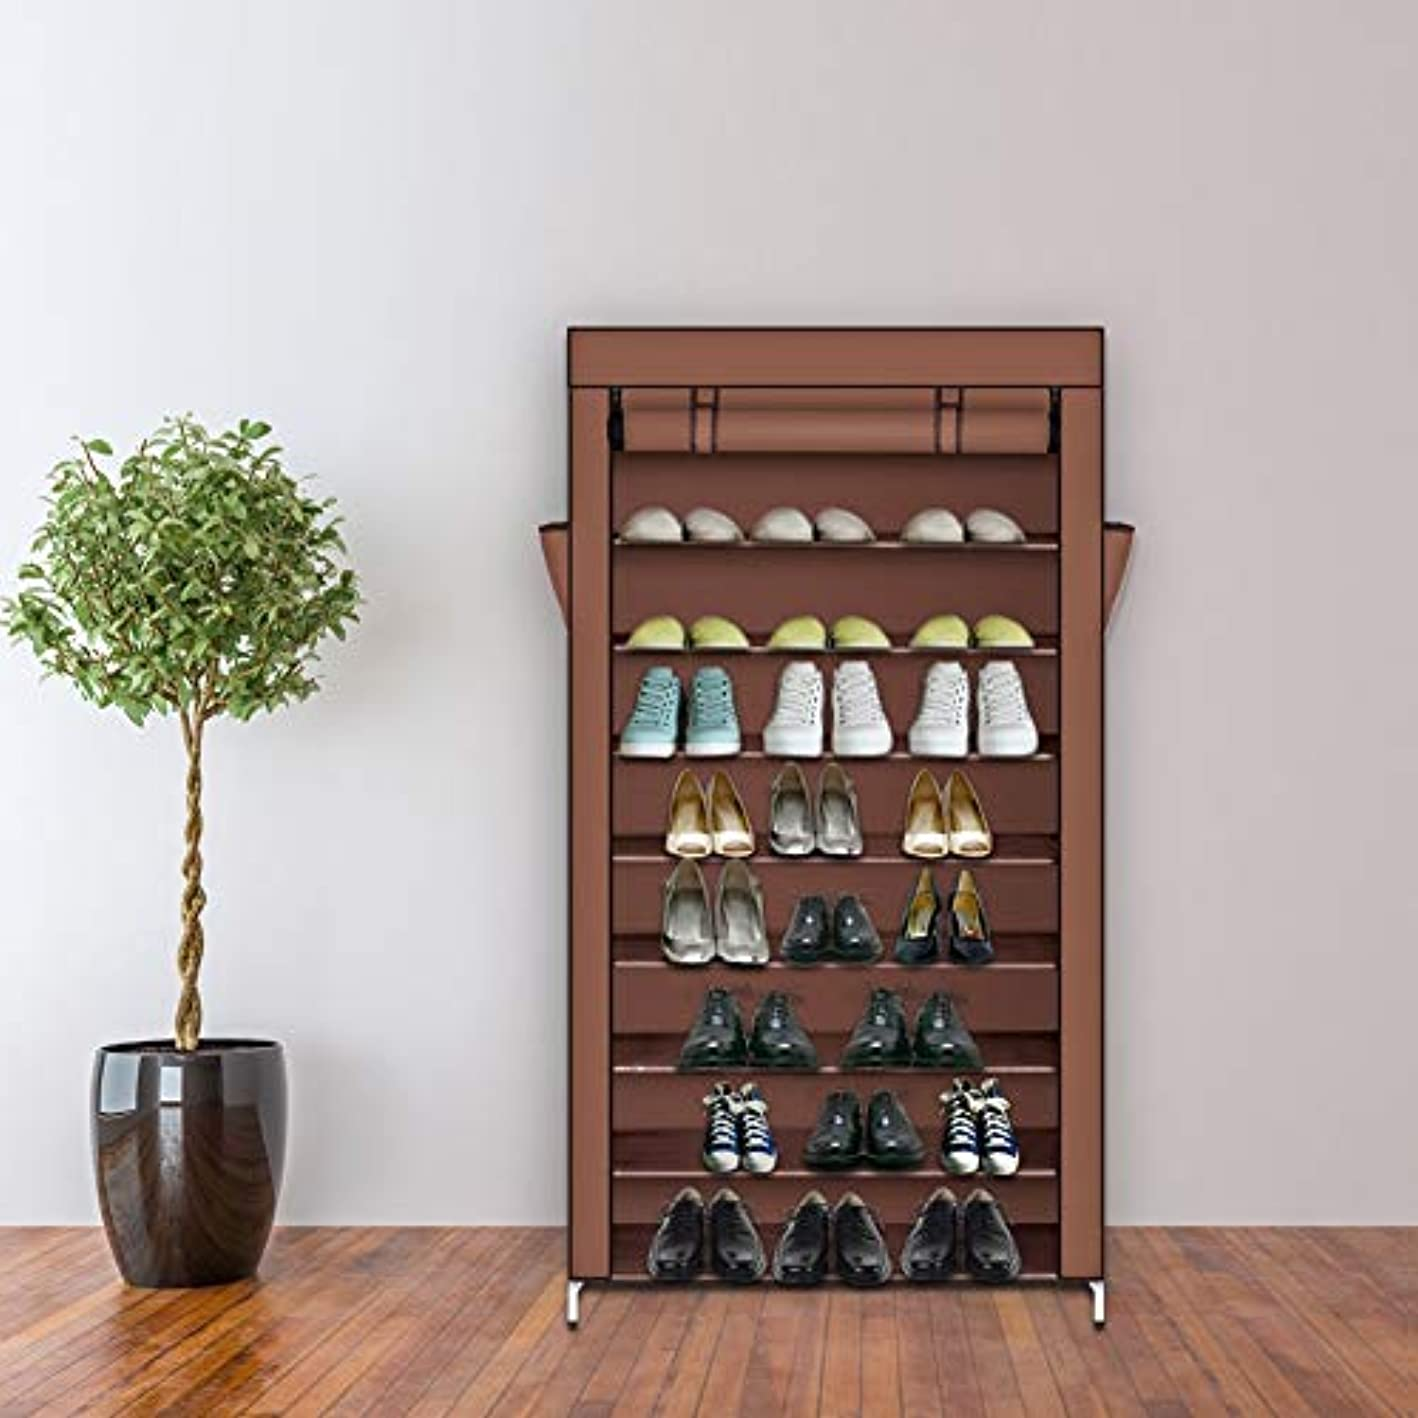 GOTOTOP 10 Tiers Shoe Tower Rack with Dustproof Nonwoven Fabric Cover Space Saving with Zipper Closet Shoe Storage Cabinet Organizer Mocha